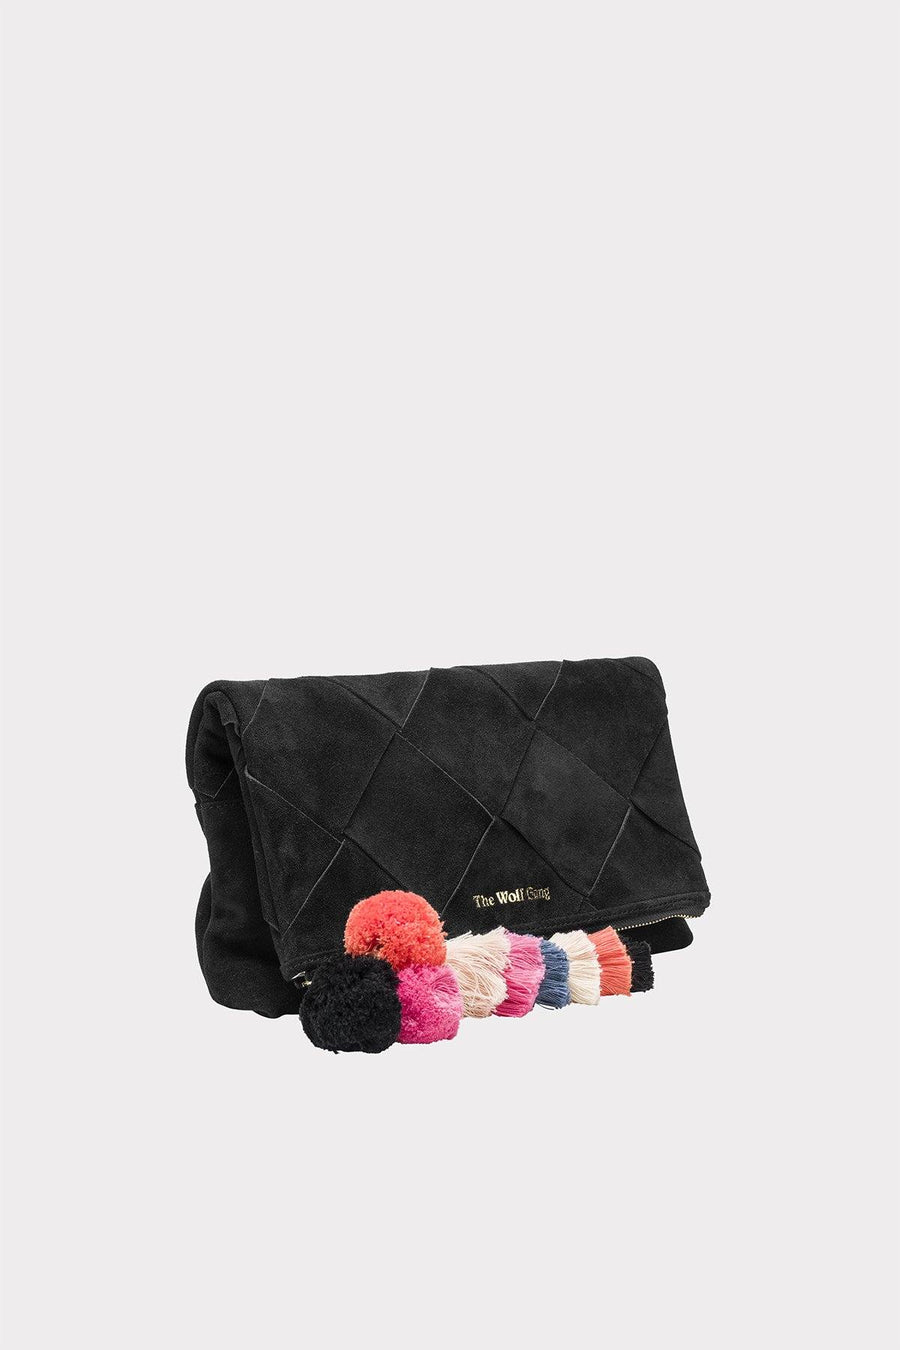 The Wolf Gang Tejer Woven Clutch - Noir - Siren & Muse